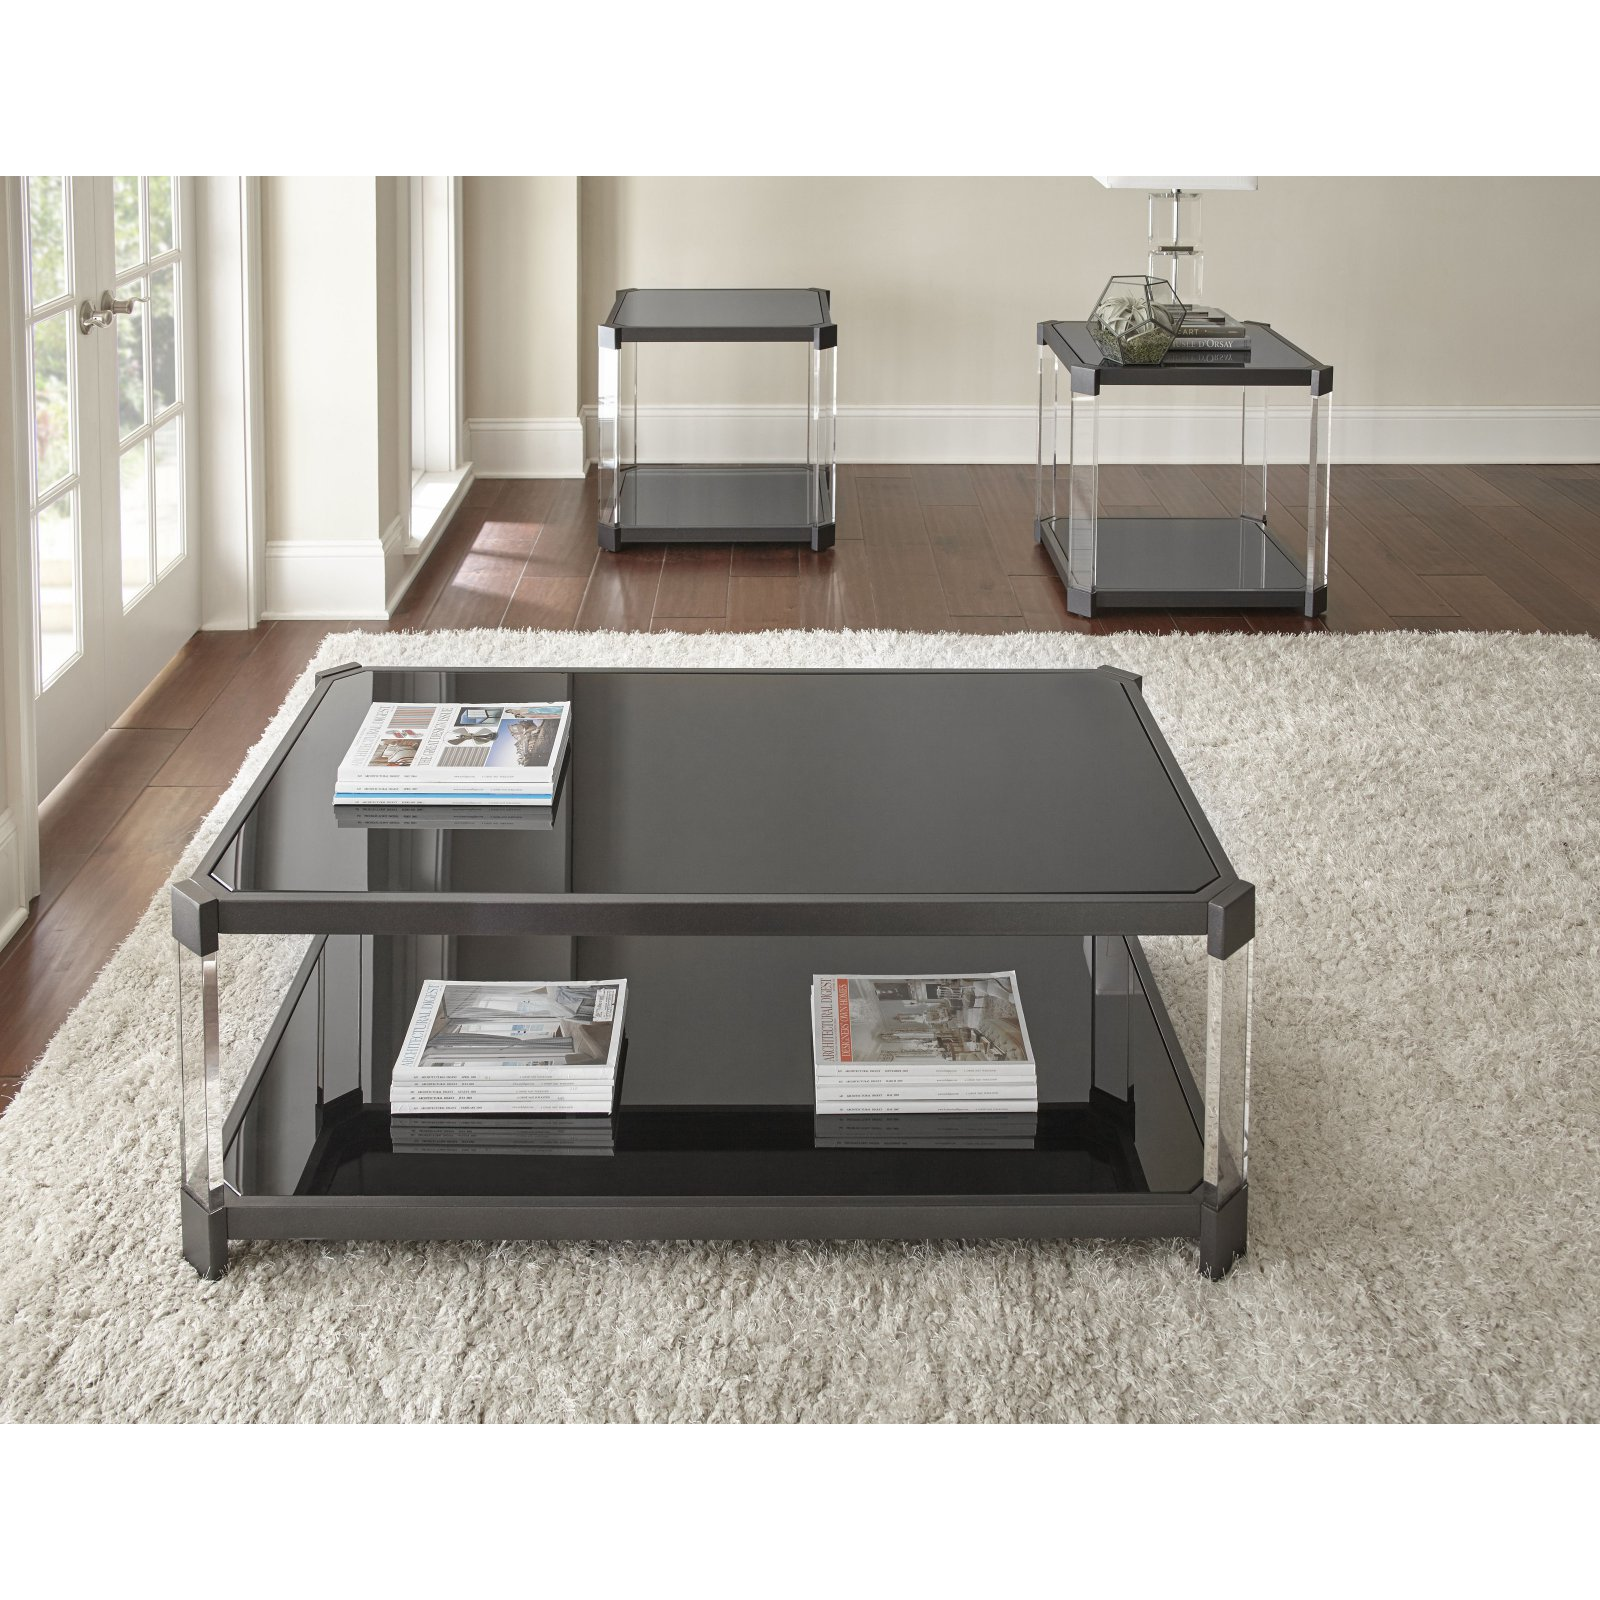 Steve Silver Newton Cocktail Table With Casters